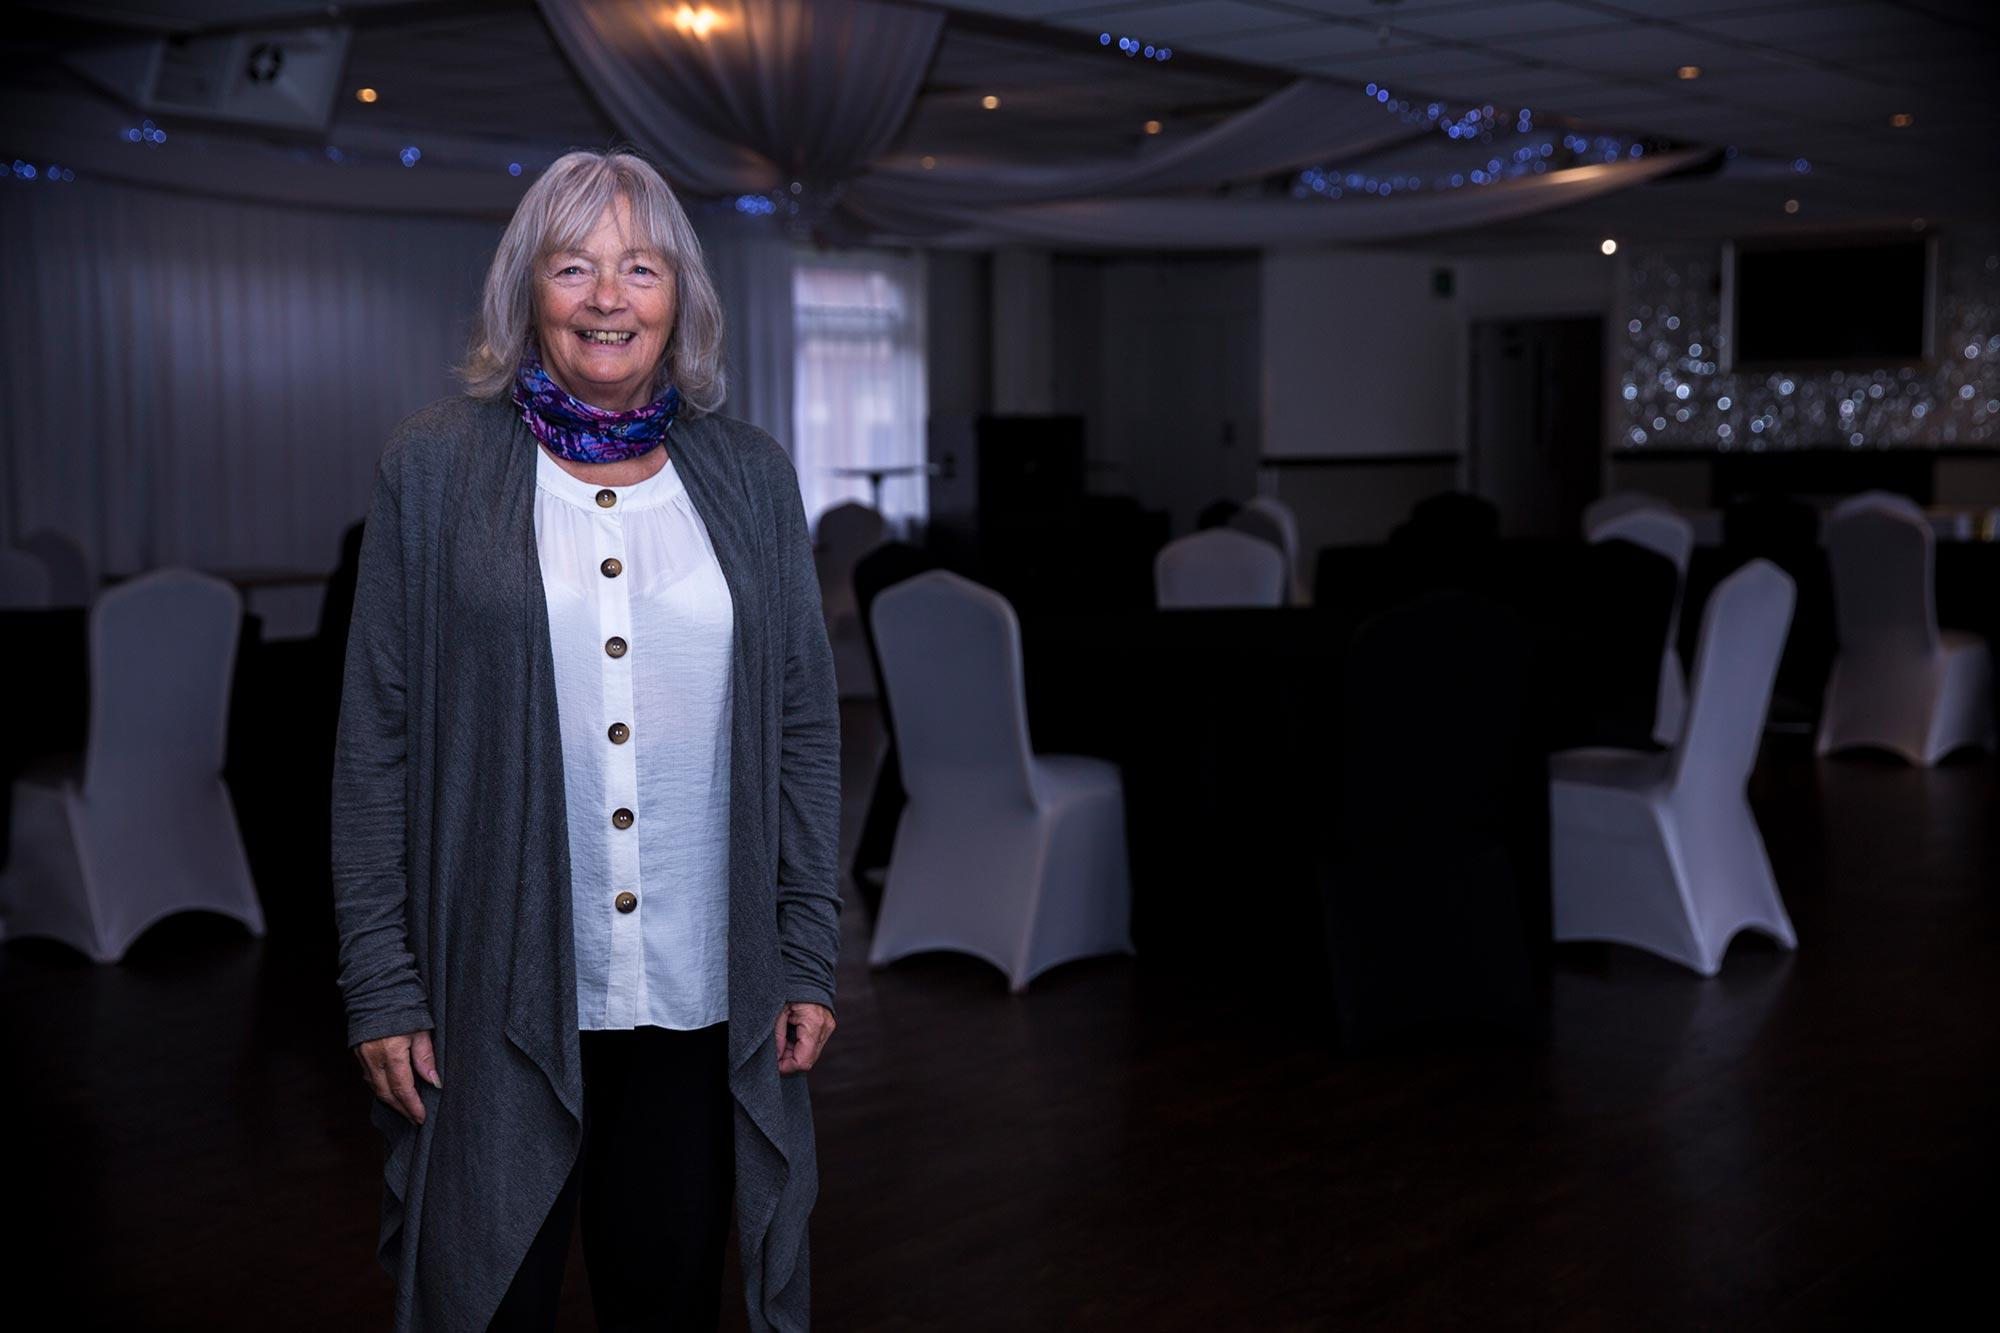 Marian Phillips setting up a wedding event